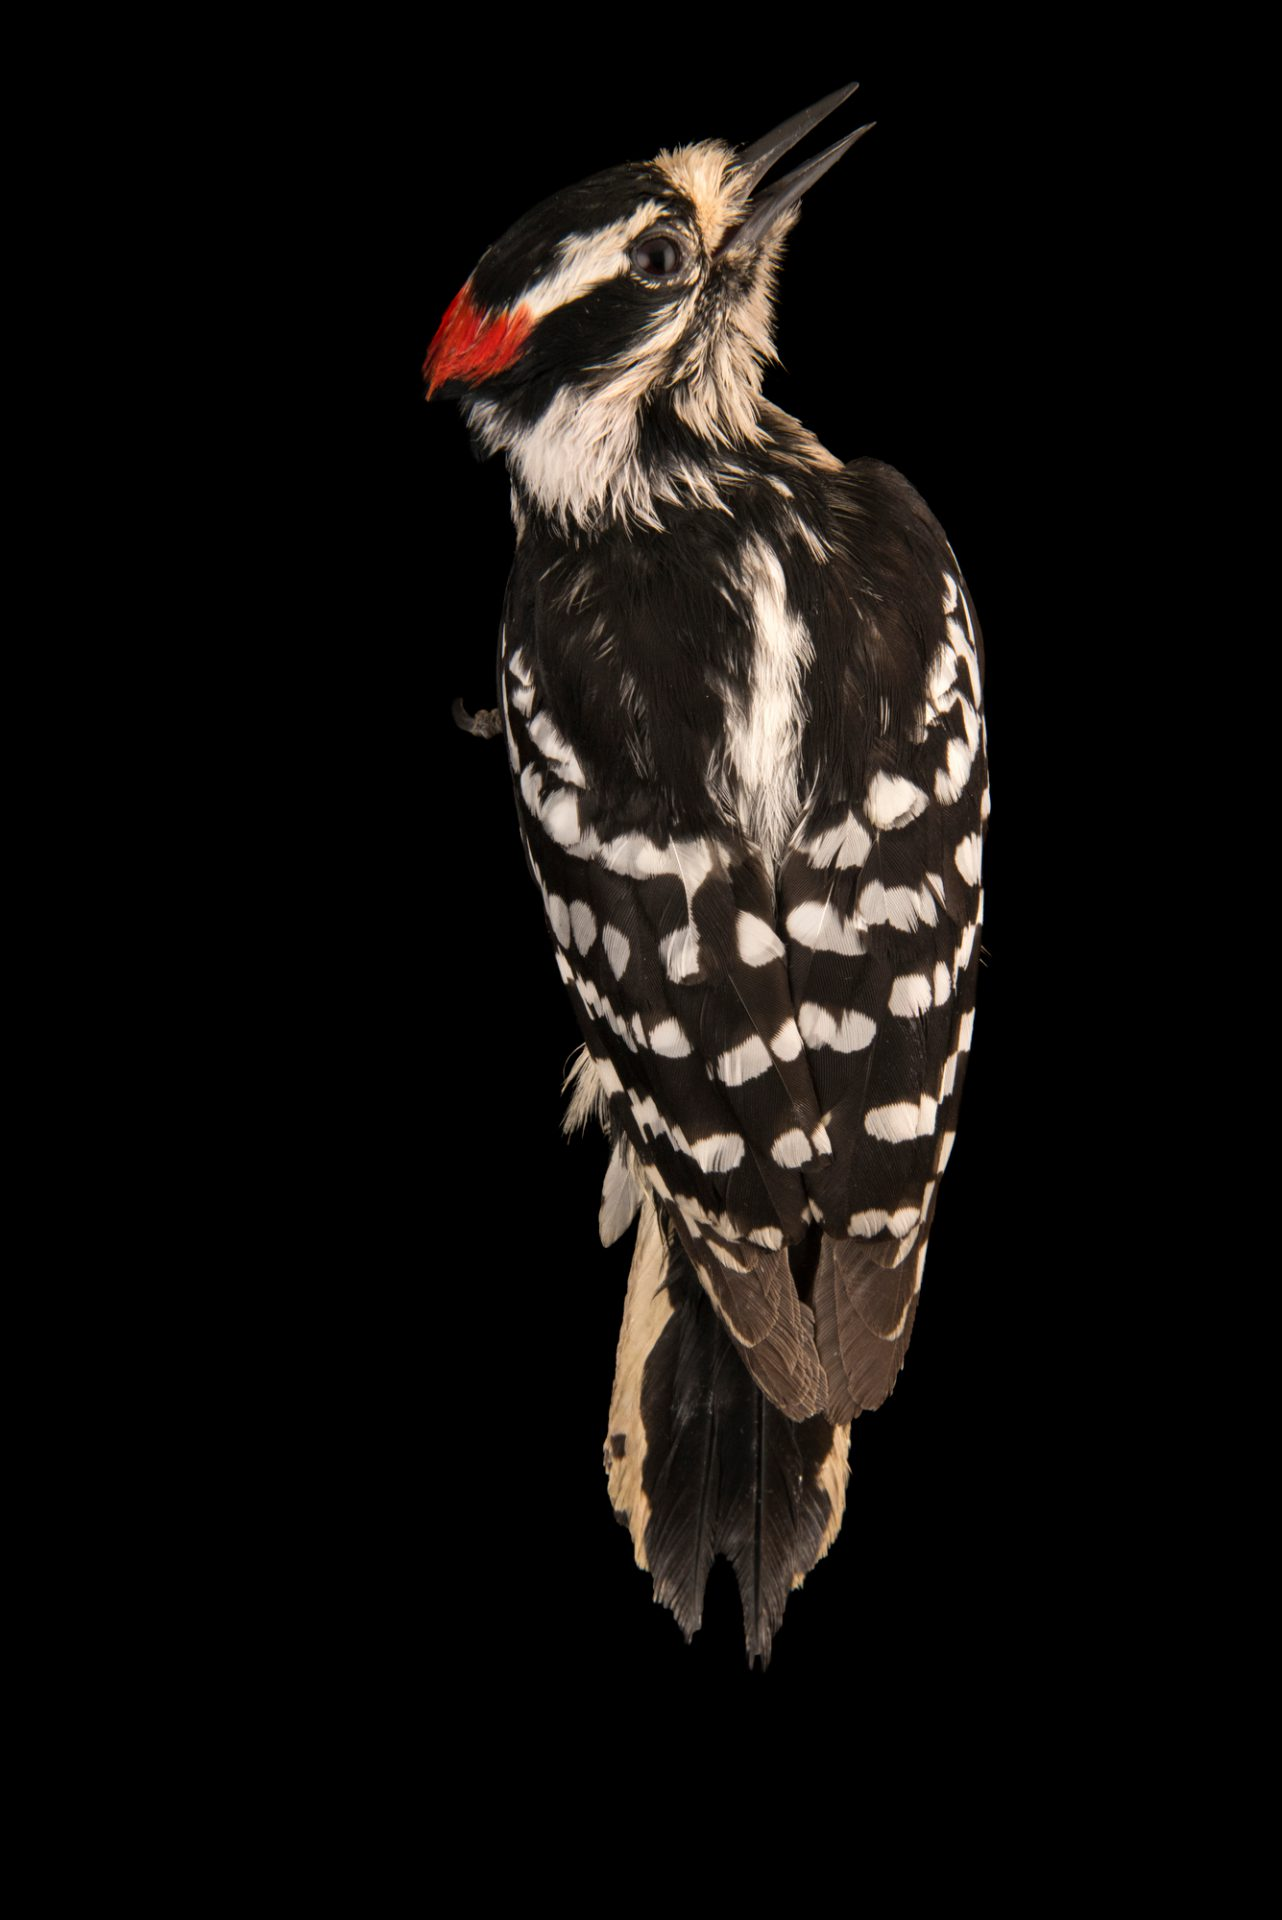 Photo: A male downy woodpecker (Dryobates pubescens) at the Wildlife Rehabilitation Center in Roseville, Minnesota.